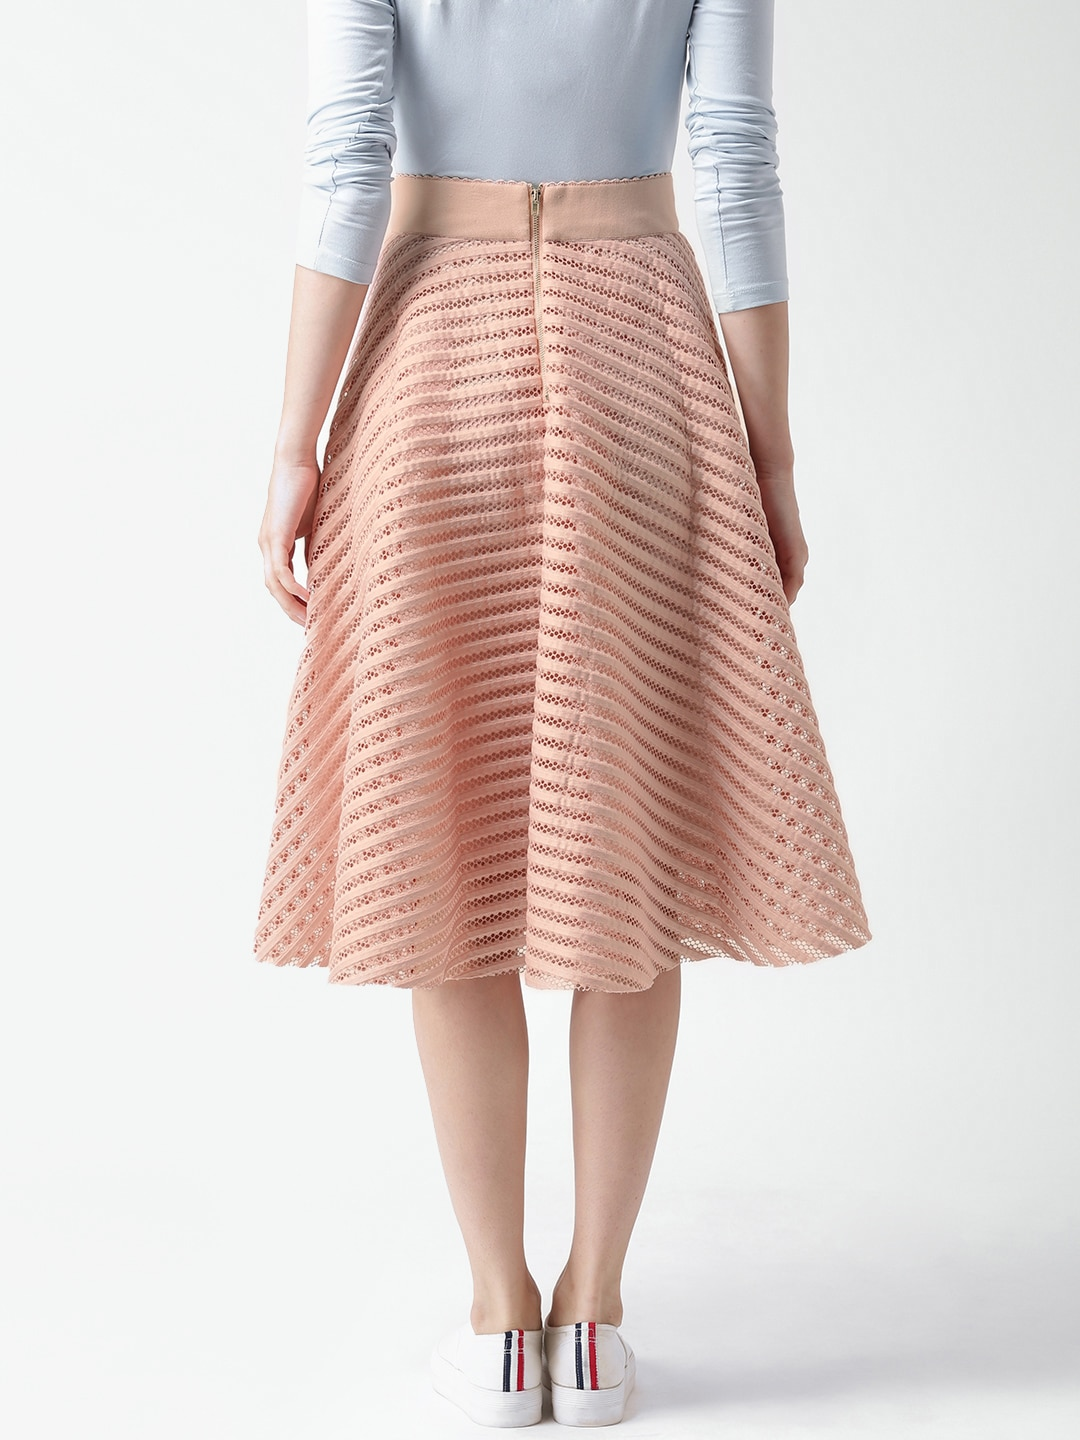 New Look Skirts - Buy New Look Skirts online in India